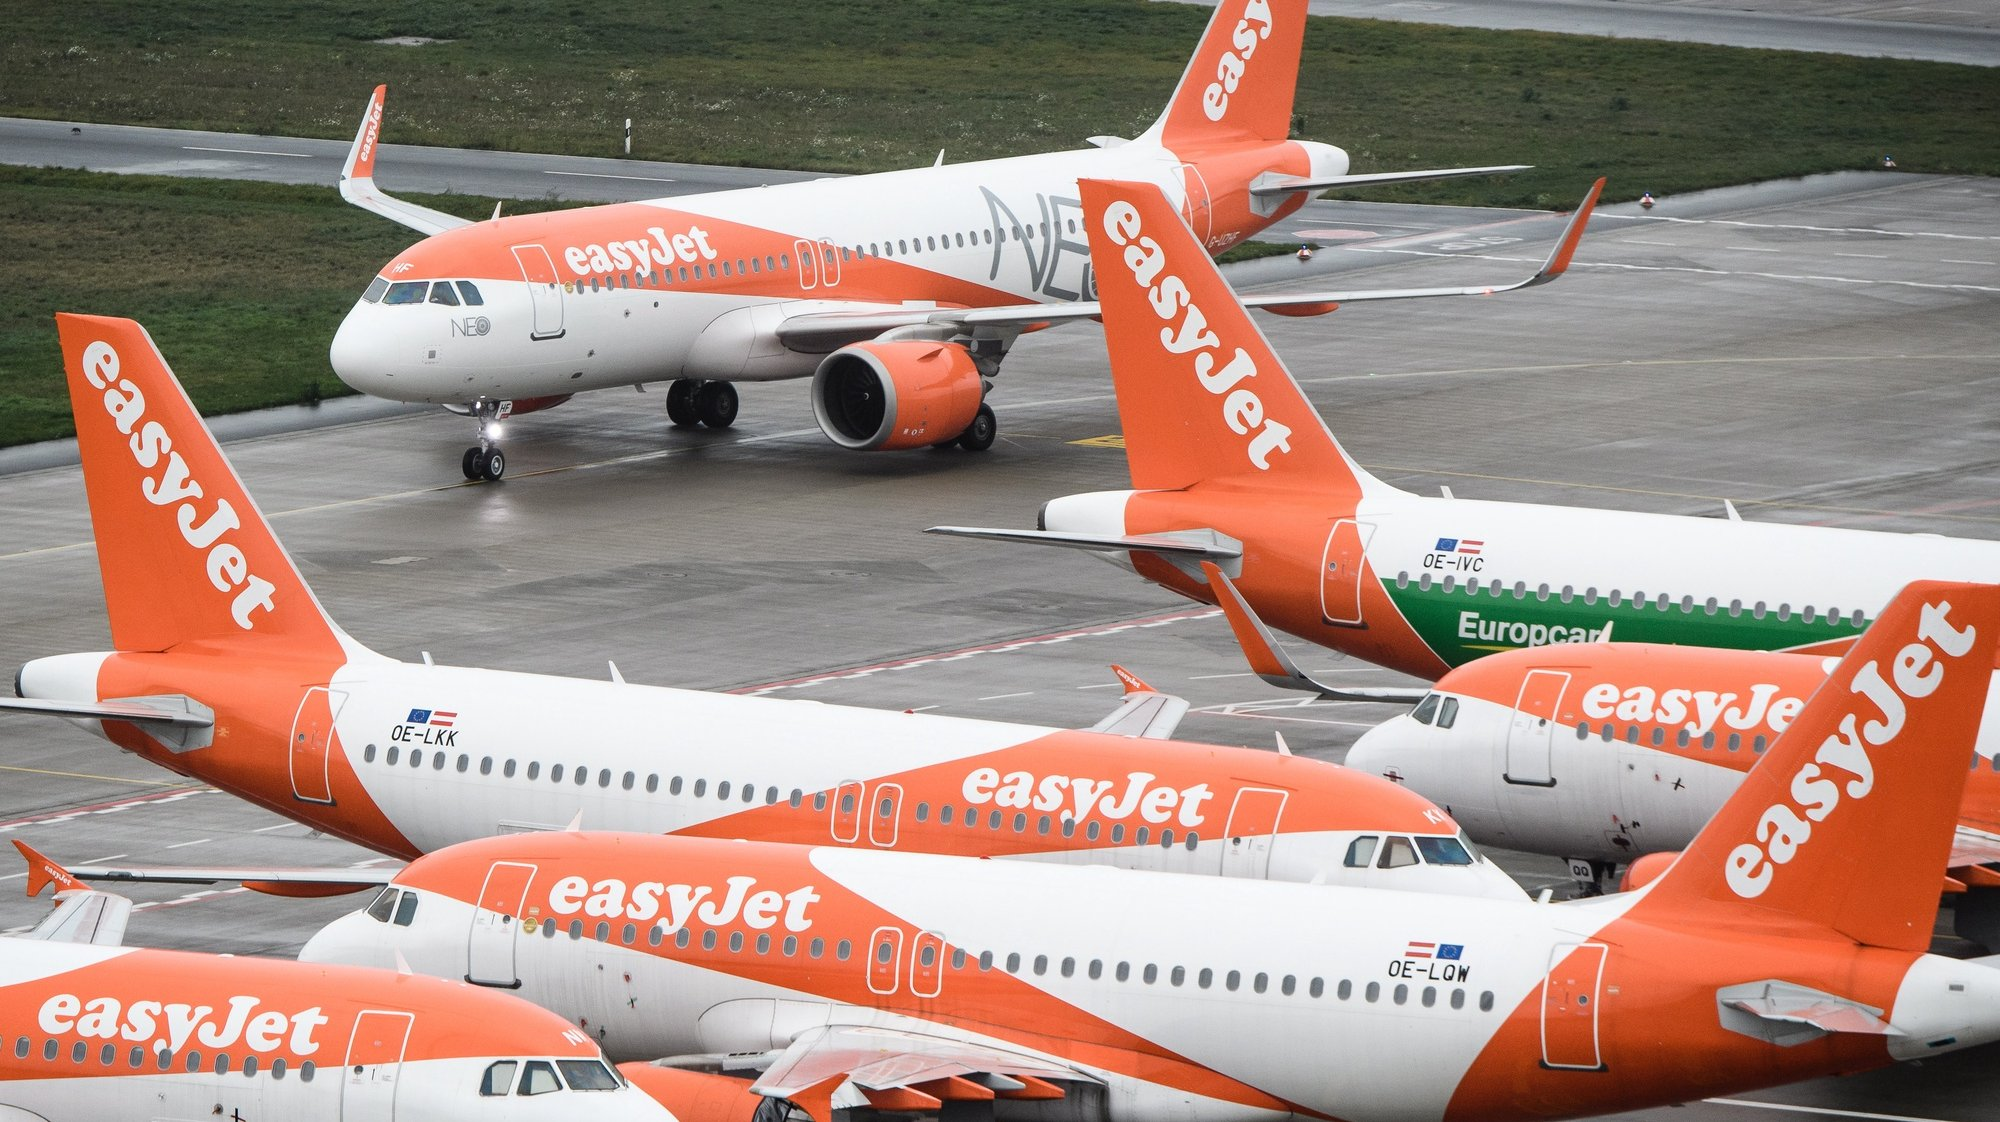 epa08967940 (FILE) - An EasyJet plane (top), taxiing on the tarmac during the opening of BER Berlin Brandenburg Airport in Schoenefeld, Germany, 31 October 2020 (reissued 27 January 2021). EasyJet is due to publish their quarterly results 27 January 2021 while according to media reports analysts forecast easyjet's revenue may have dropped up to 80 per cent from same period in 2020.  EPA/CLEMENS BILAN / POOL *** Local Caption *** 56465488